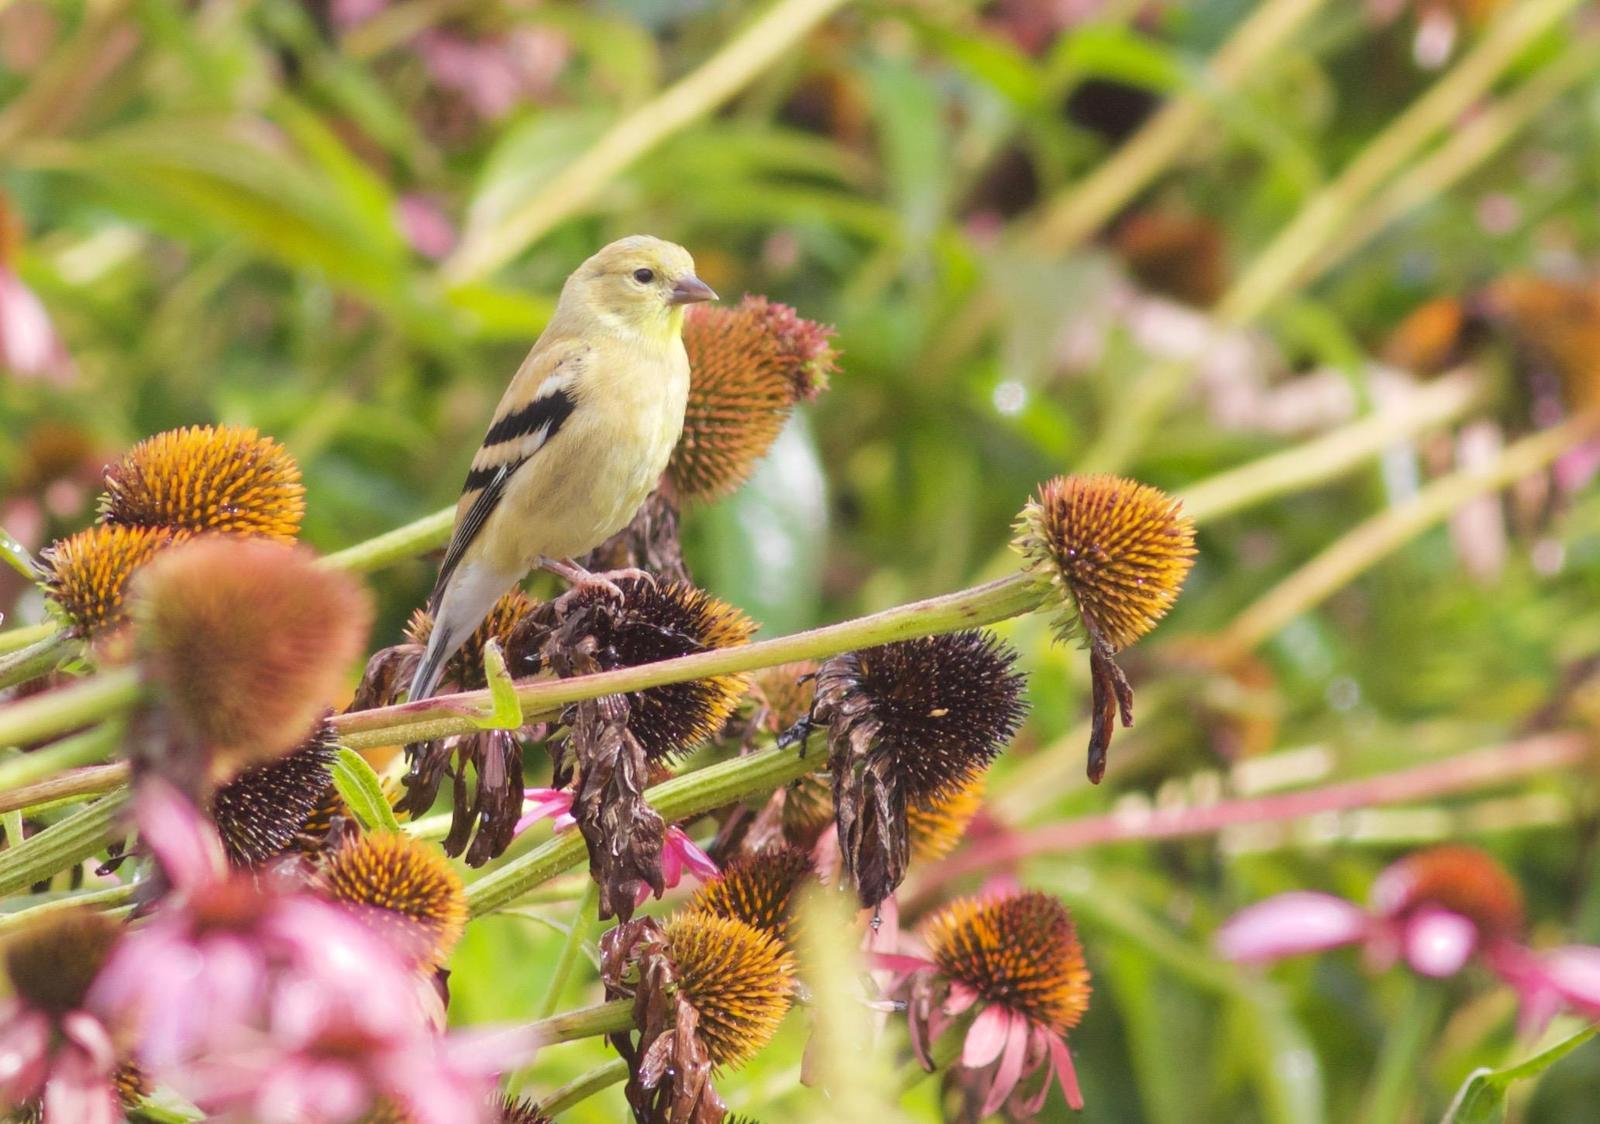 American Goldfinch Photo by Kathryn Keith